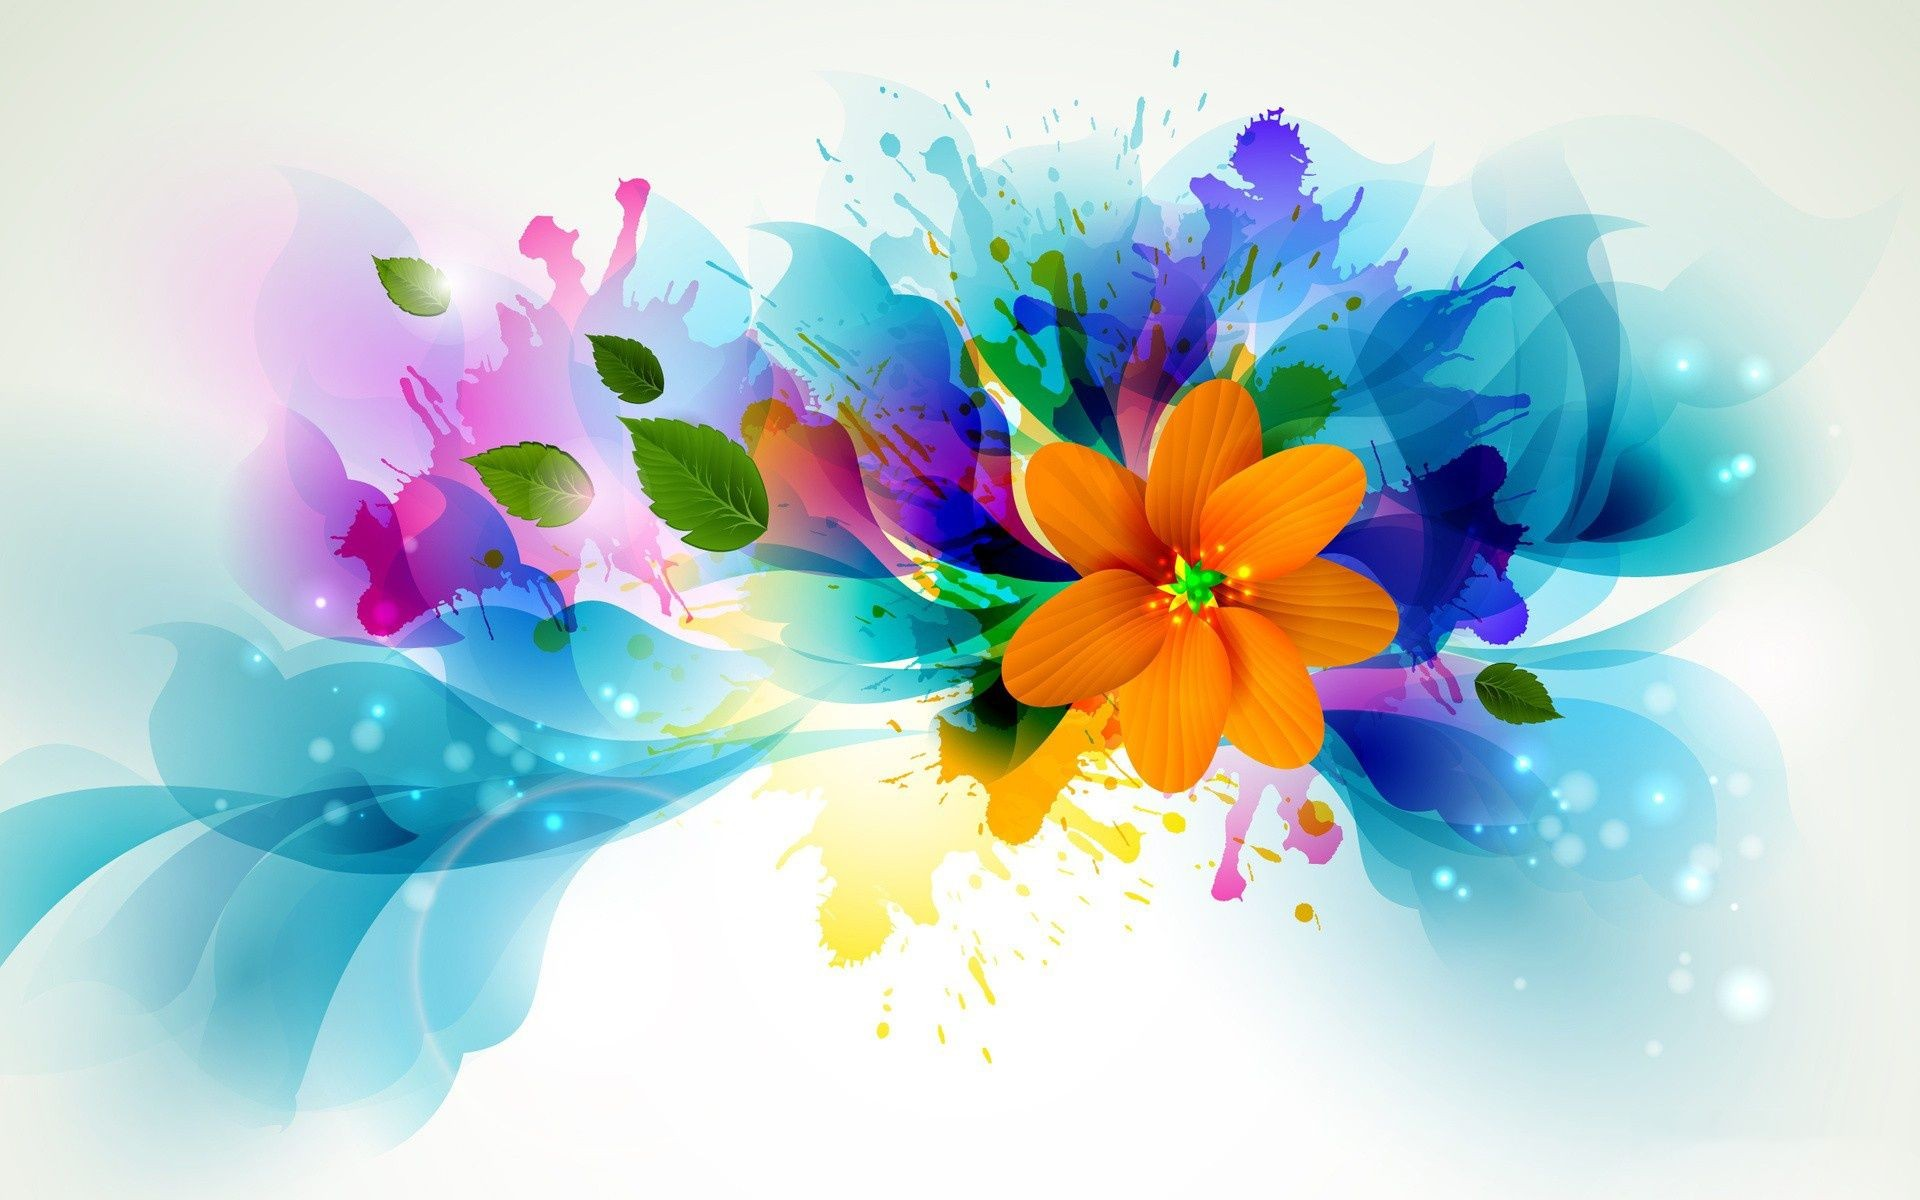 Abstract Flower Art 7051 Hd Wallpapers in Flowers   Imagescicom 1920x1200